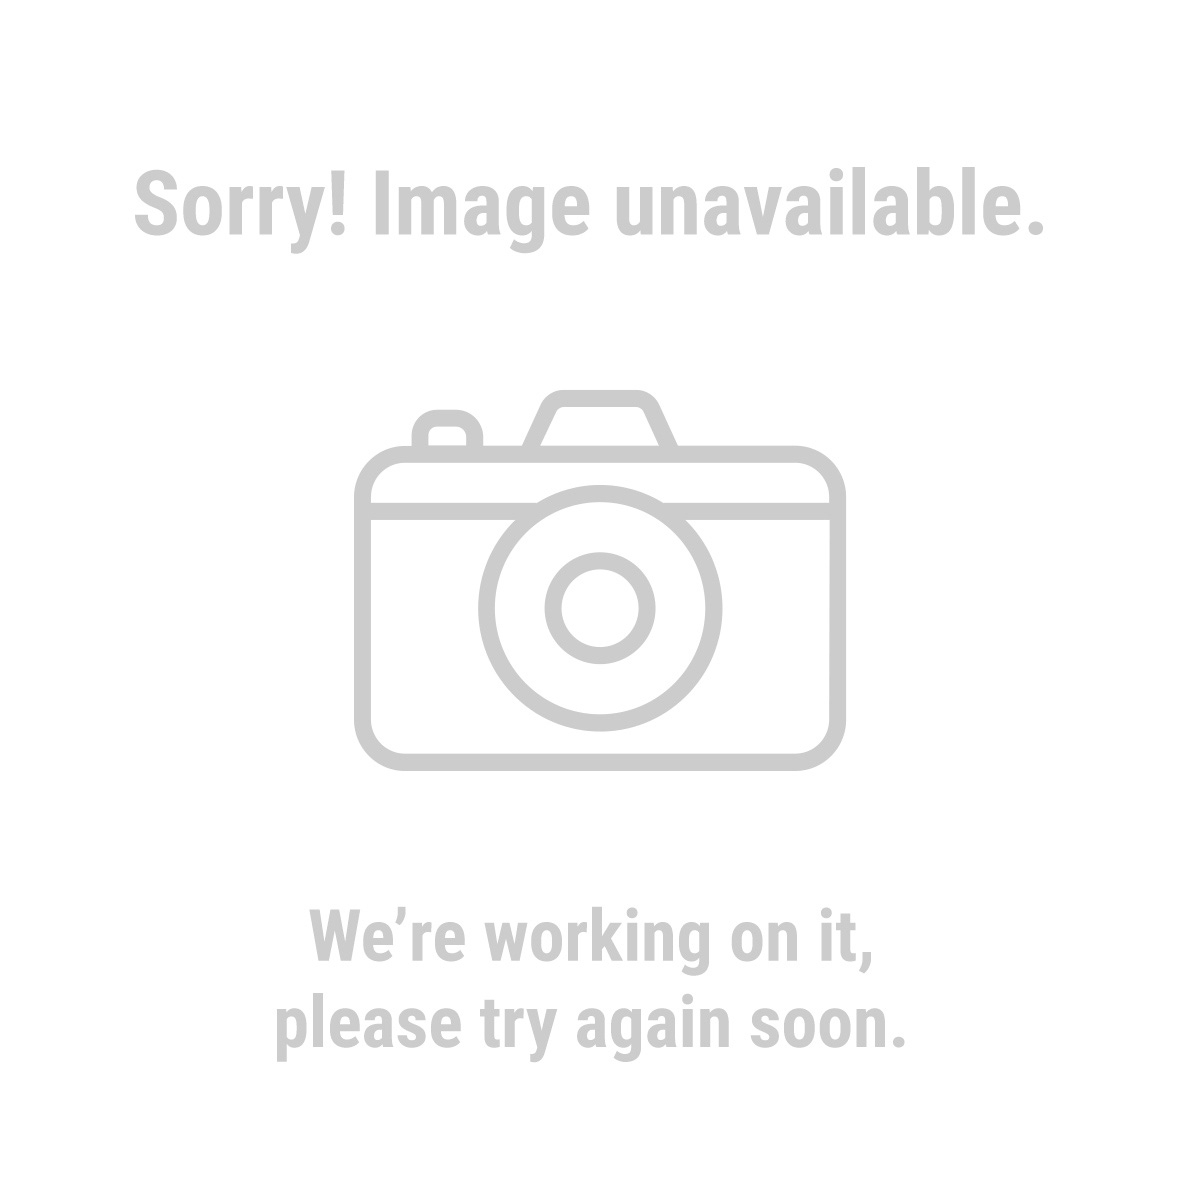 Western Safety 94357 Impact Resistant Safety Glasses